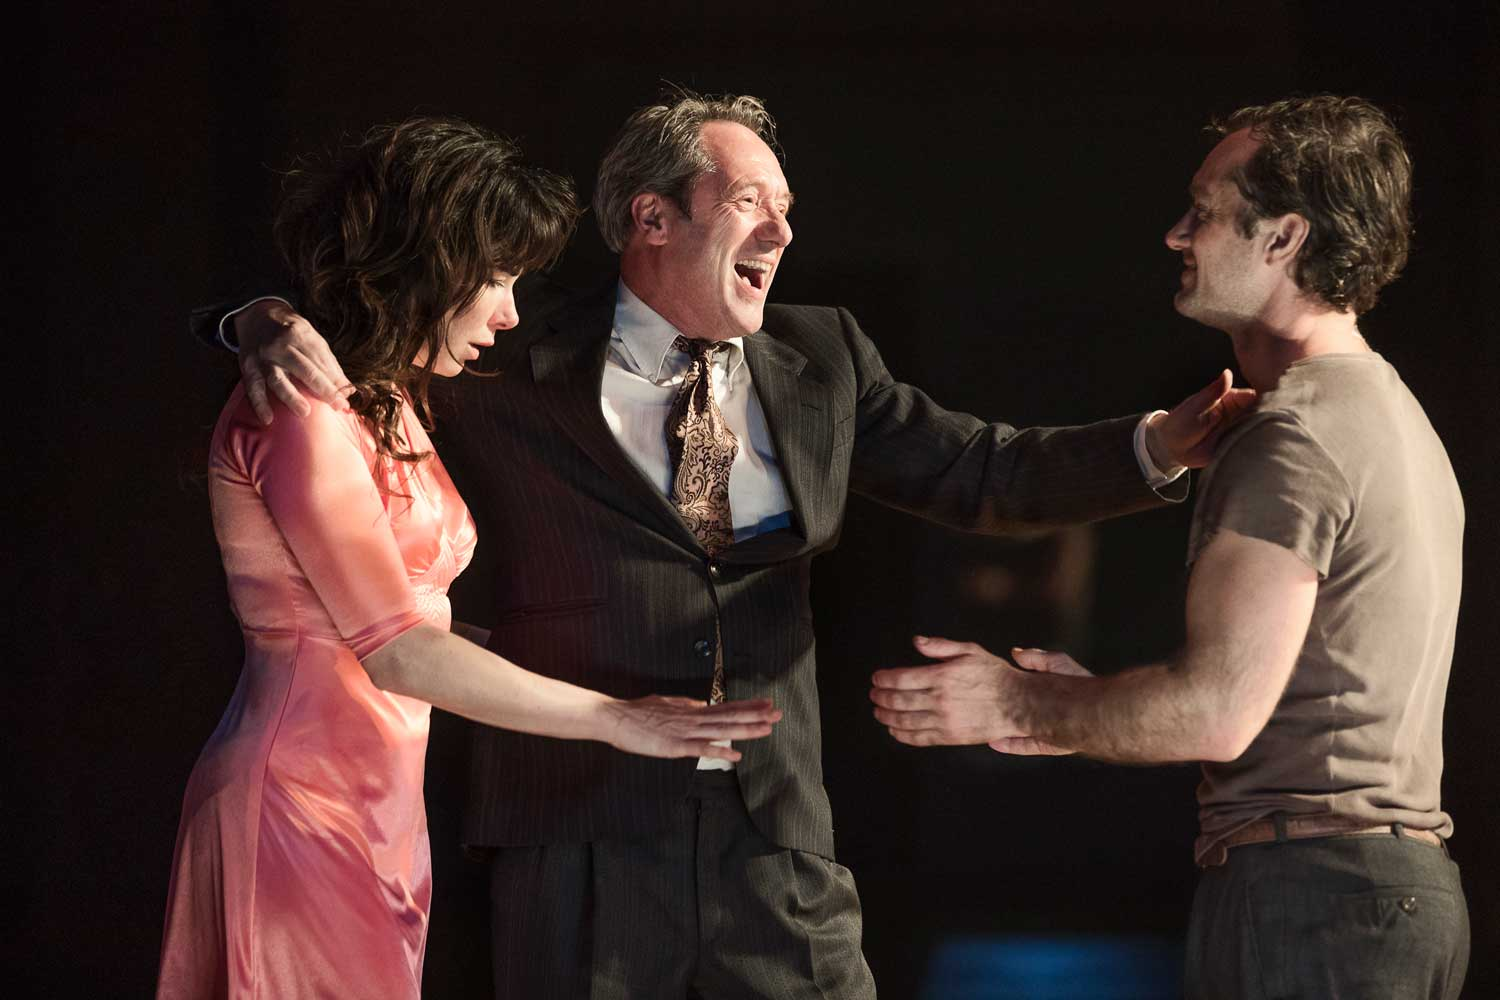 Halina Reijn, Gijs Scholten van Aschat and Jude Law in Obsession. Photo by Jan Versweyveld.